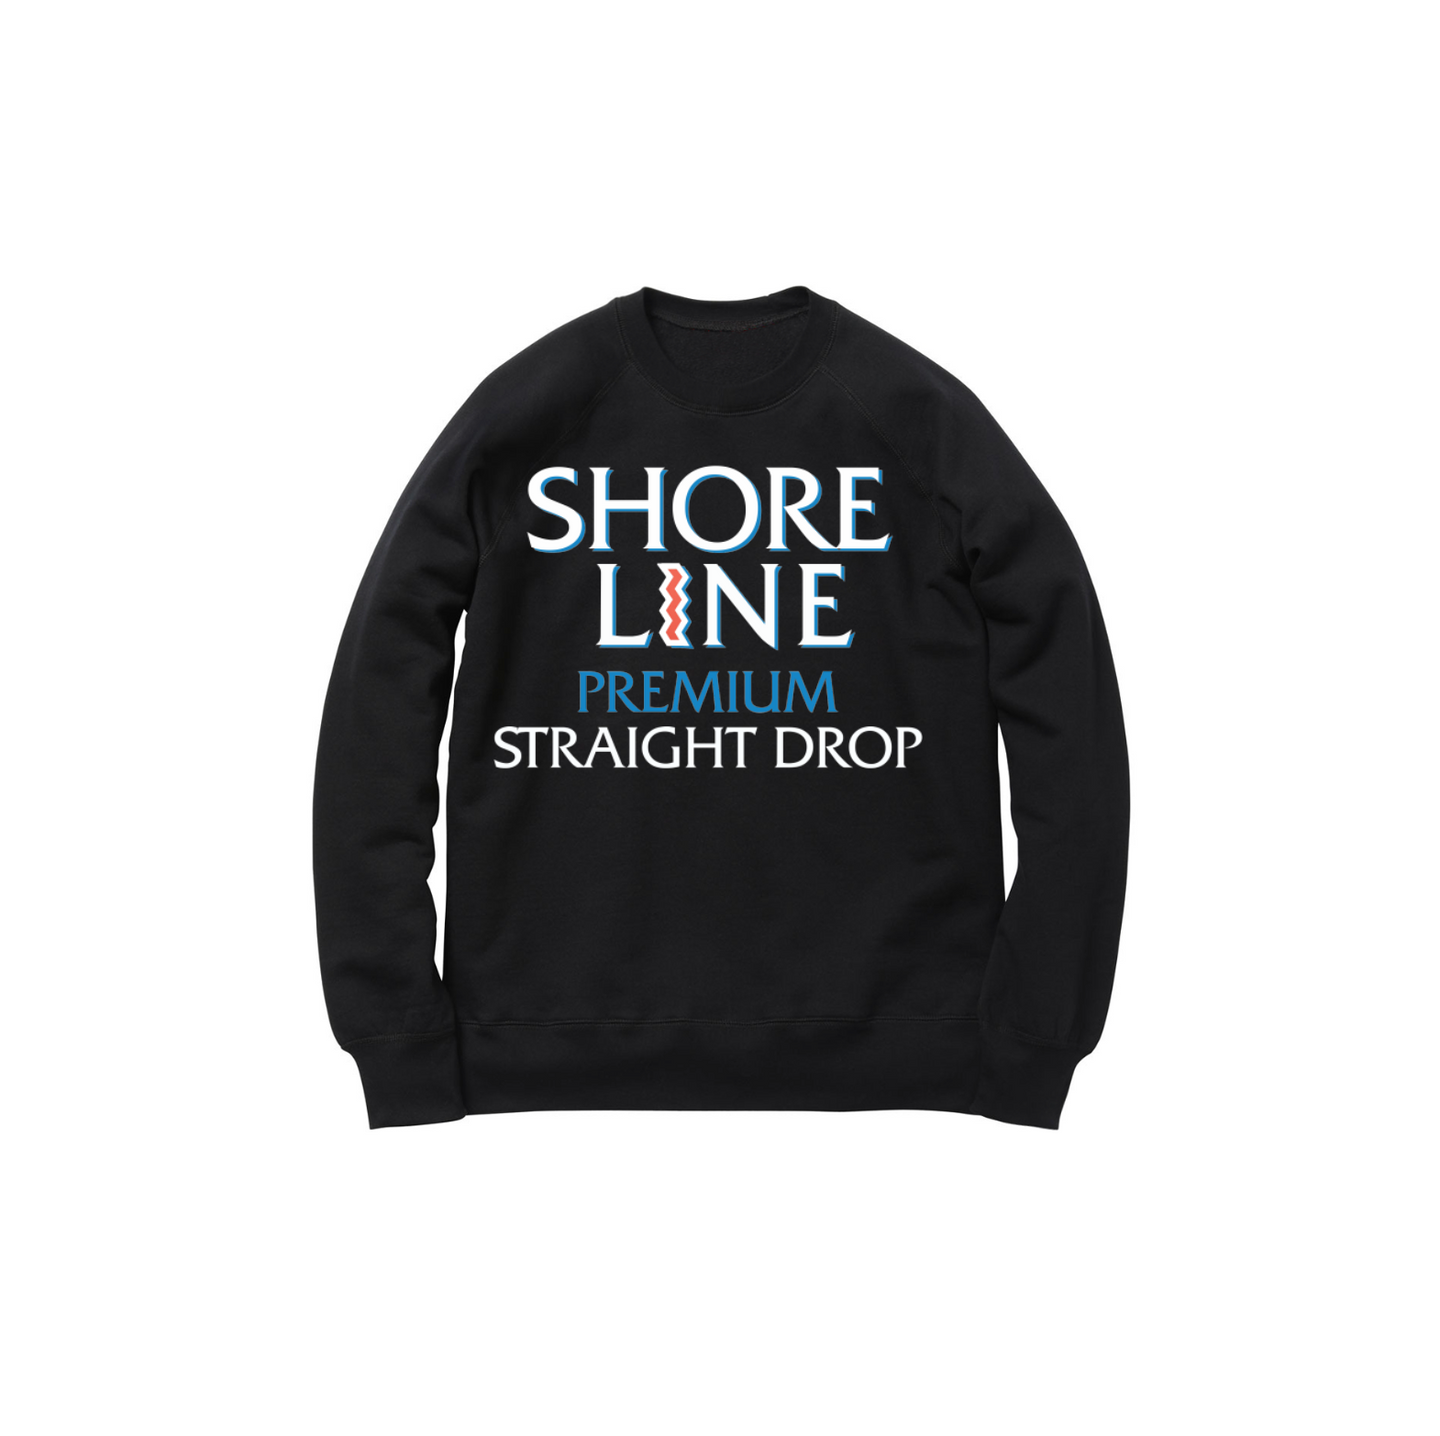 STRAIGHT DROP CREWNECK SWEATSHIRT: BLACK